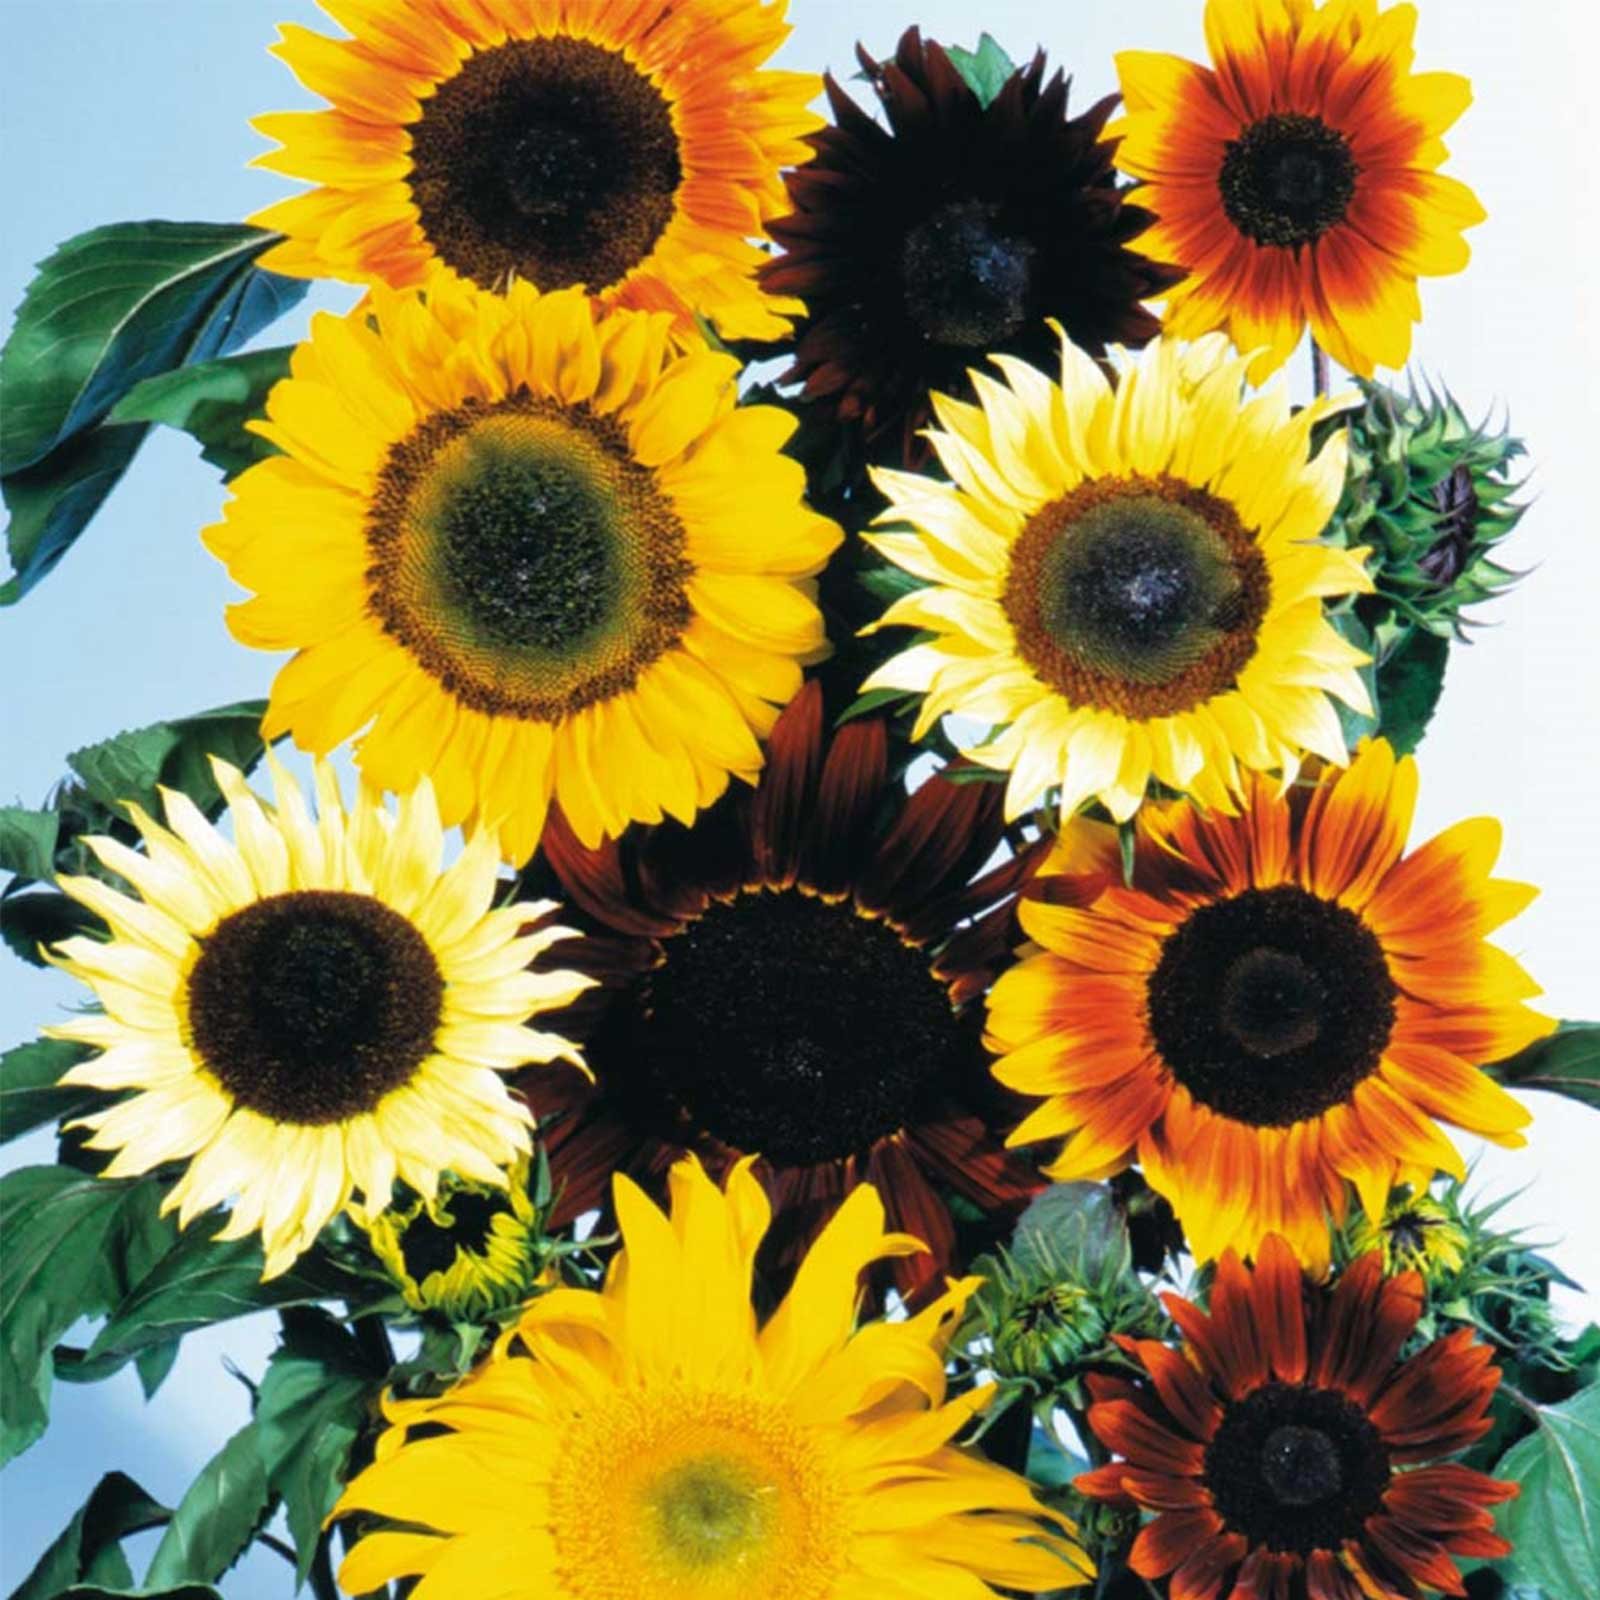 Sunflower Wild Flower Garden Seeds - All Sorts Mix - 4 Oz - Annual Wildflower Gardening Seeds